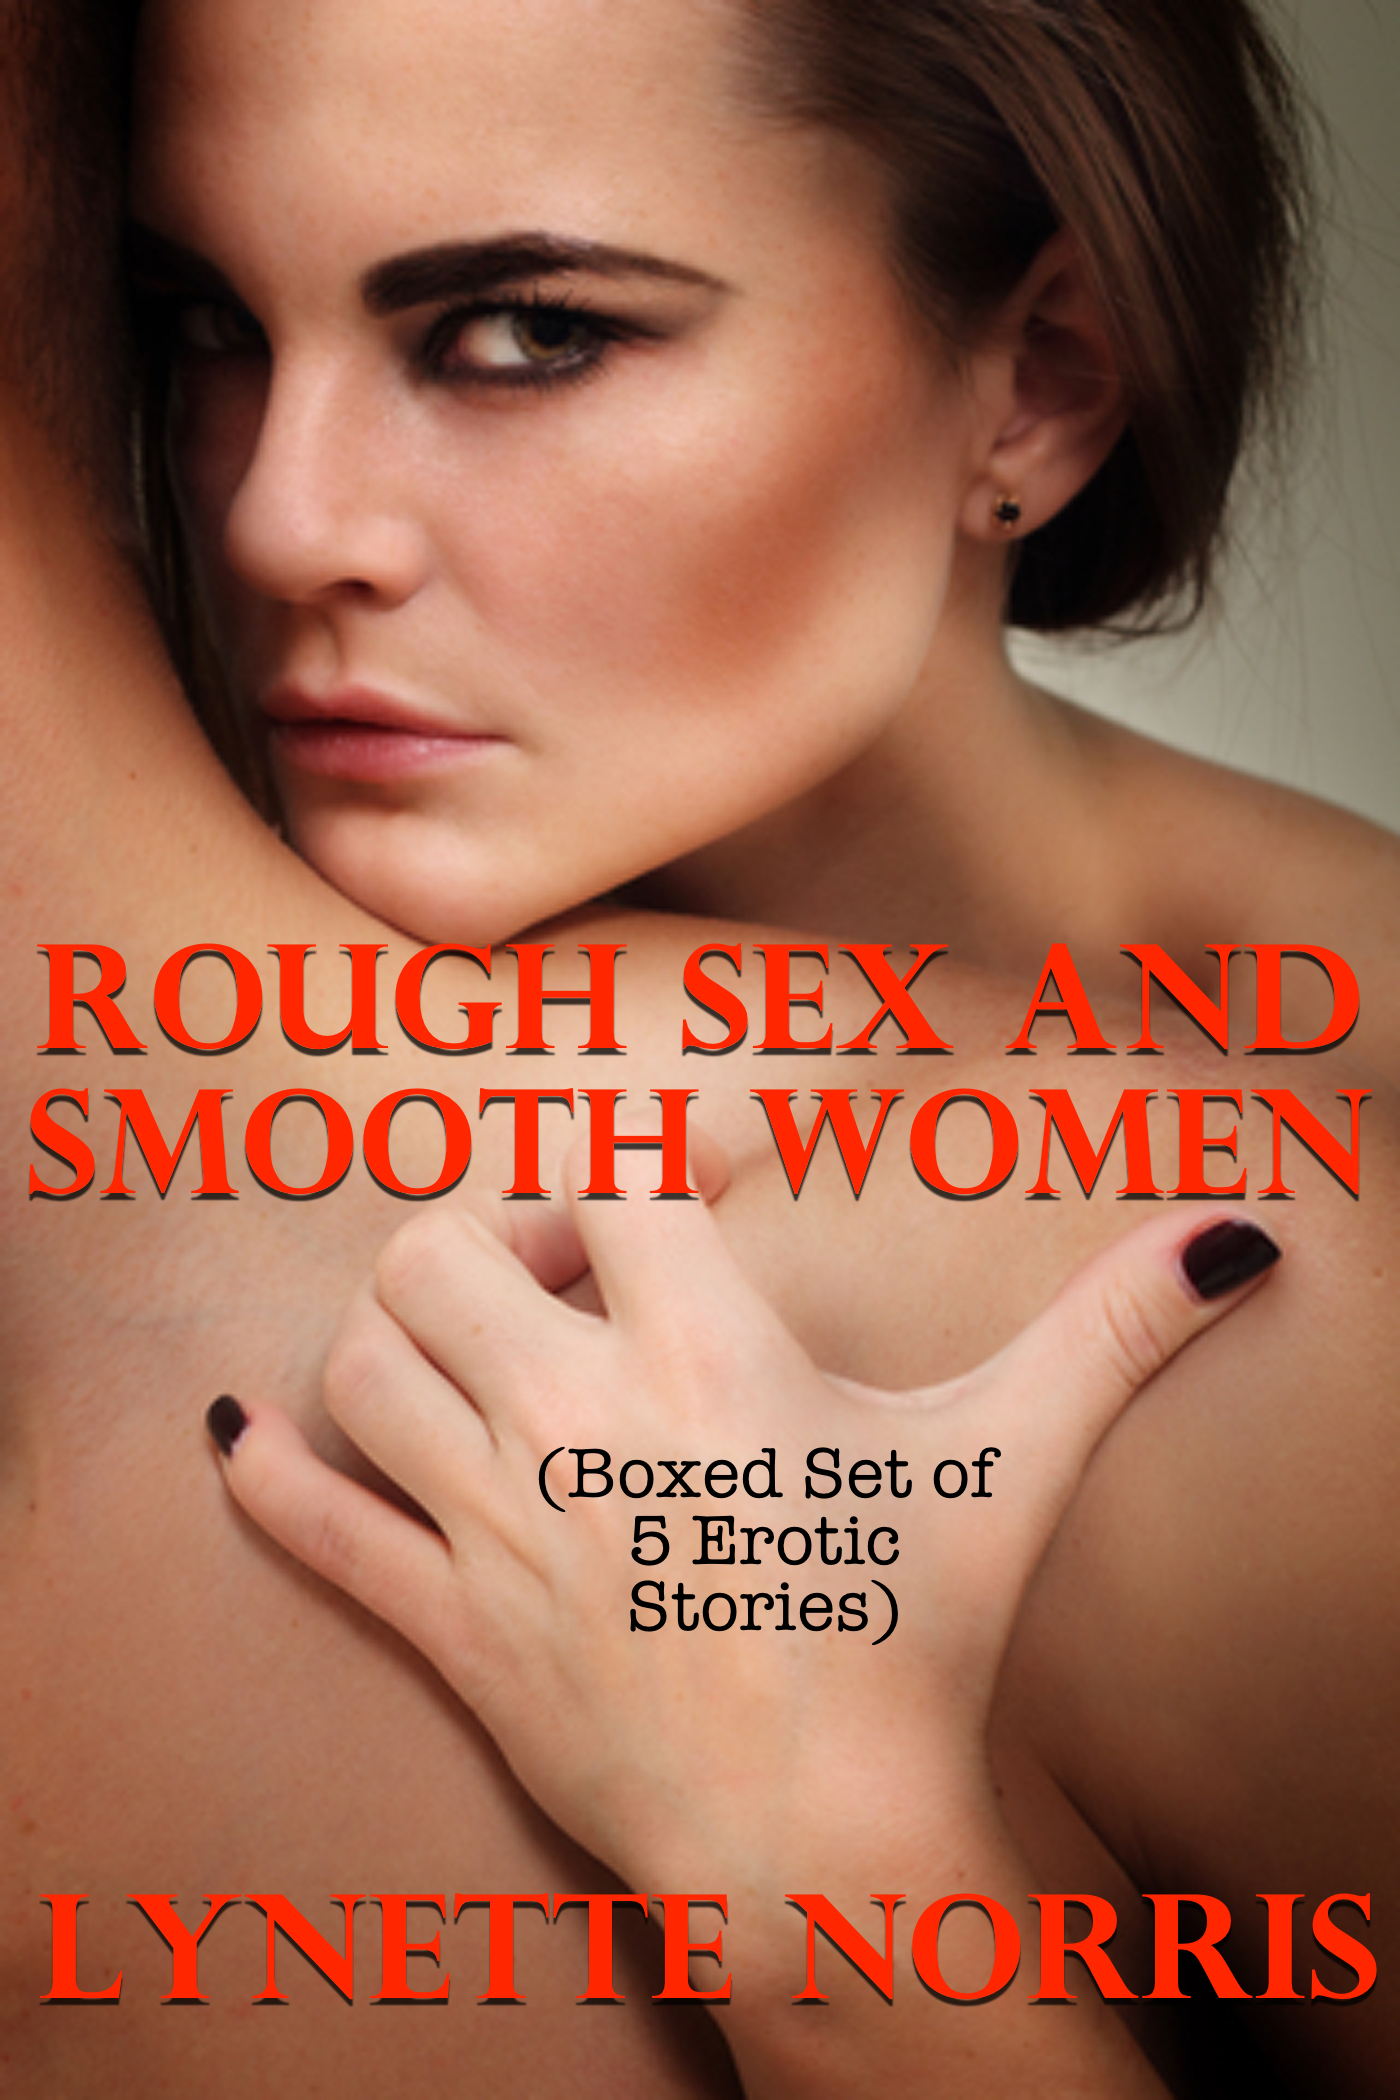 Rough Sex And Smooth Women Boxed Set Of 5 Erotic Stories